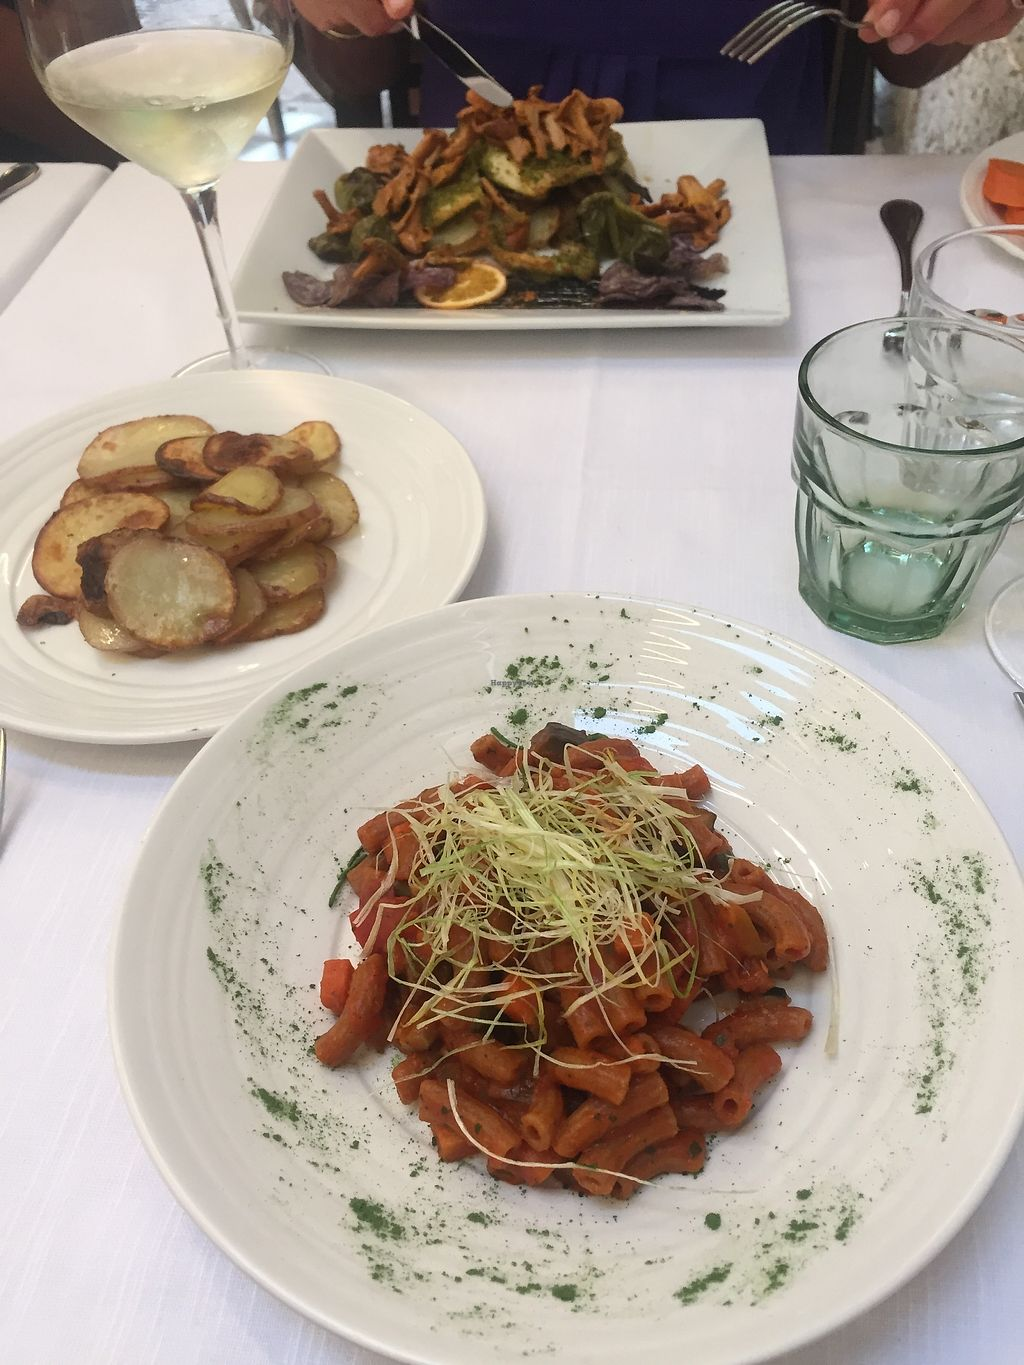 """Photo of La Piazzetta  by <a href=""""/members/profile/Annigje"""">Annigje</a> <br/>First dish <br/> August 9, 2017  - <a href='/contact/abuse/image/98210/290874'>Report</a>"""